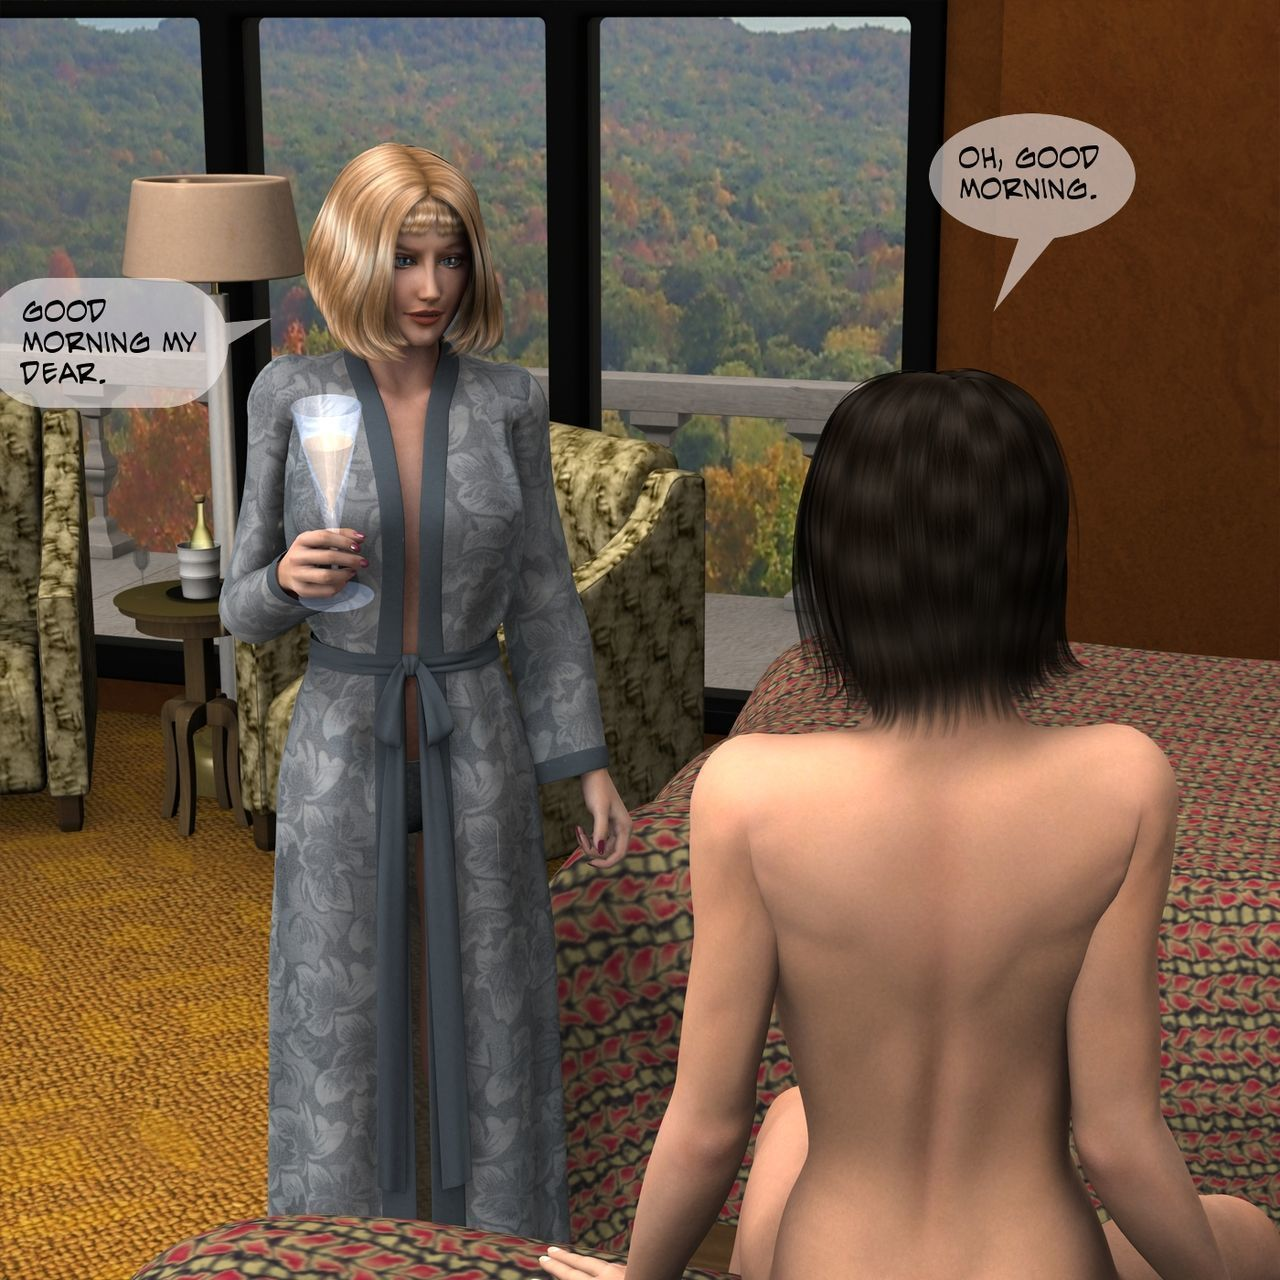 [Fasdeviant] Ashbury Private Health Resort - Chapter 7 The Red Pill